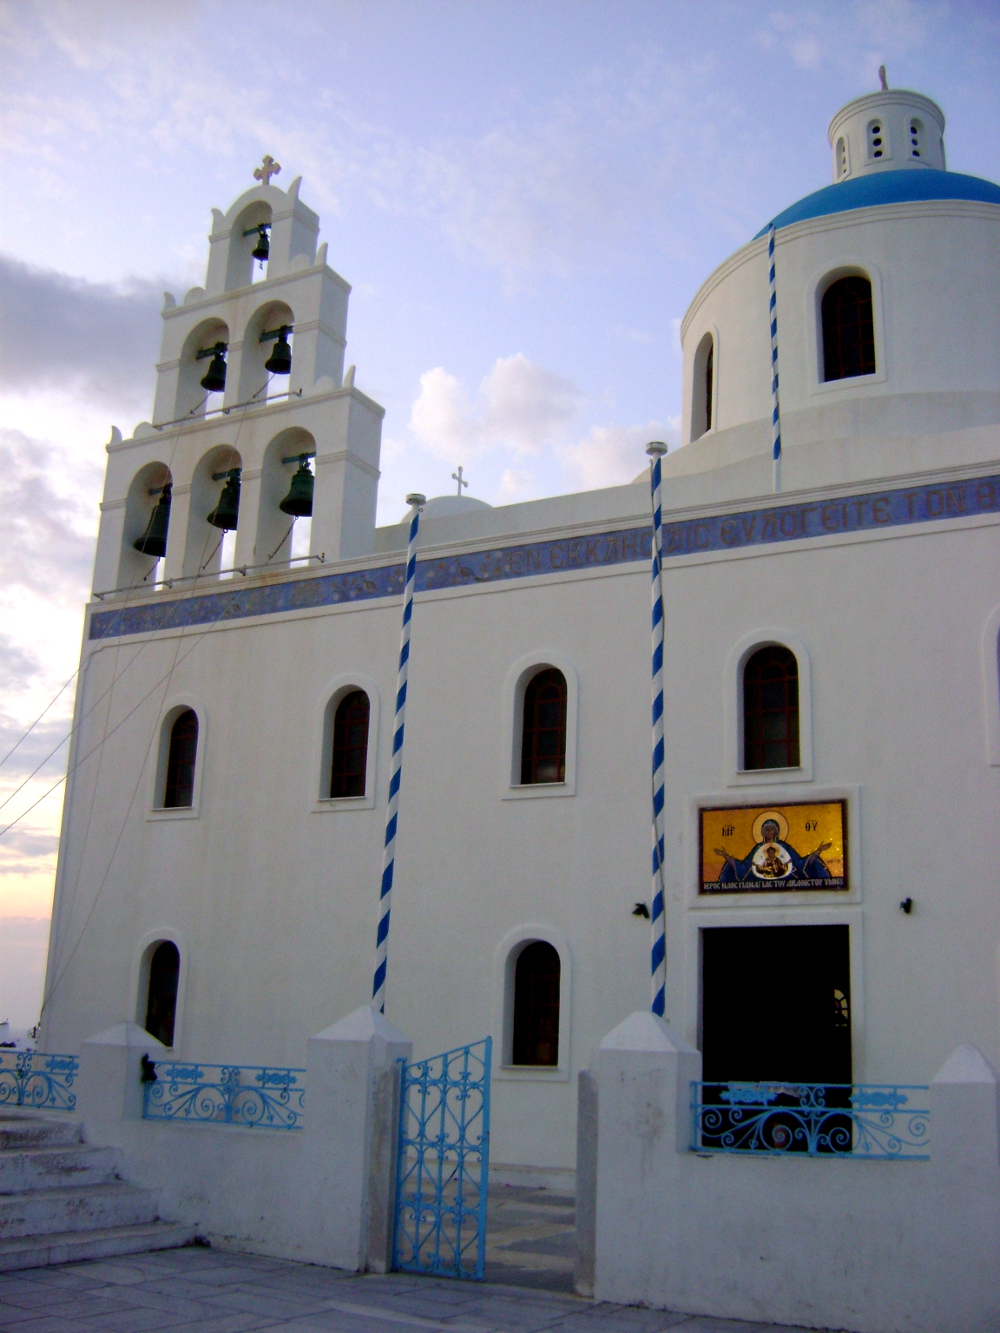 santorini church street scene Double-Barrelled Travel